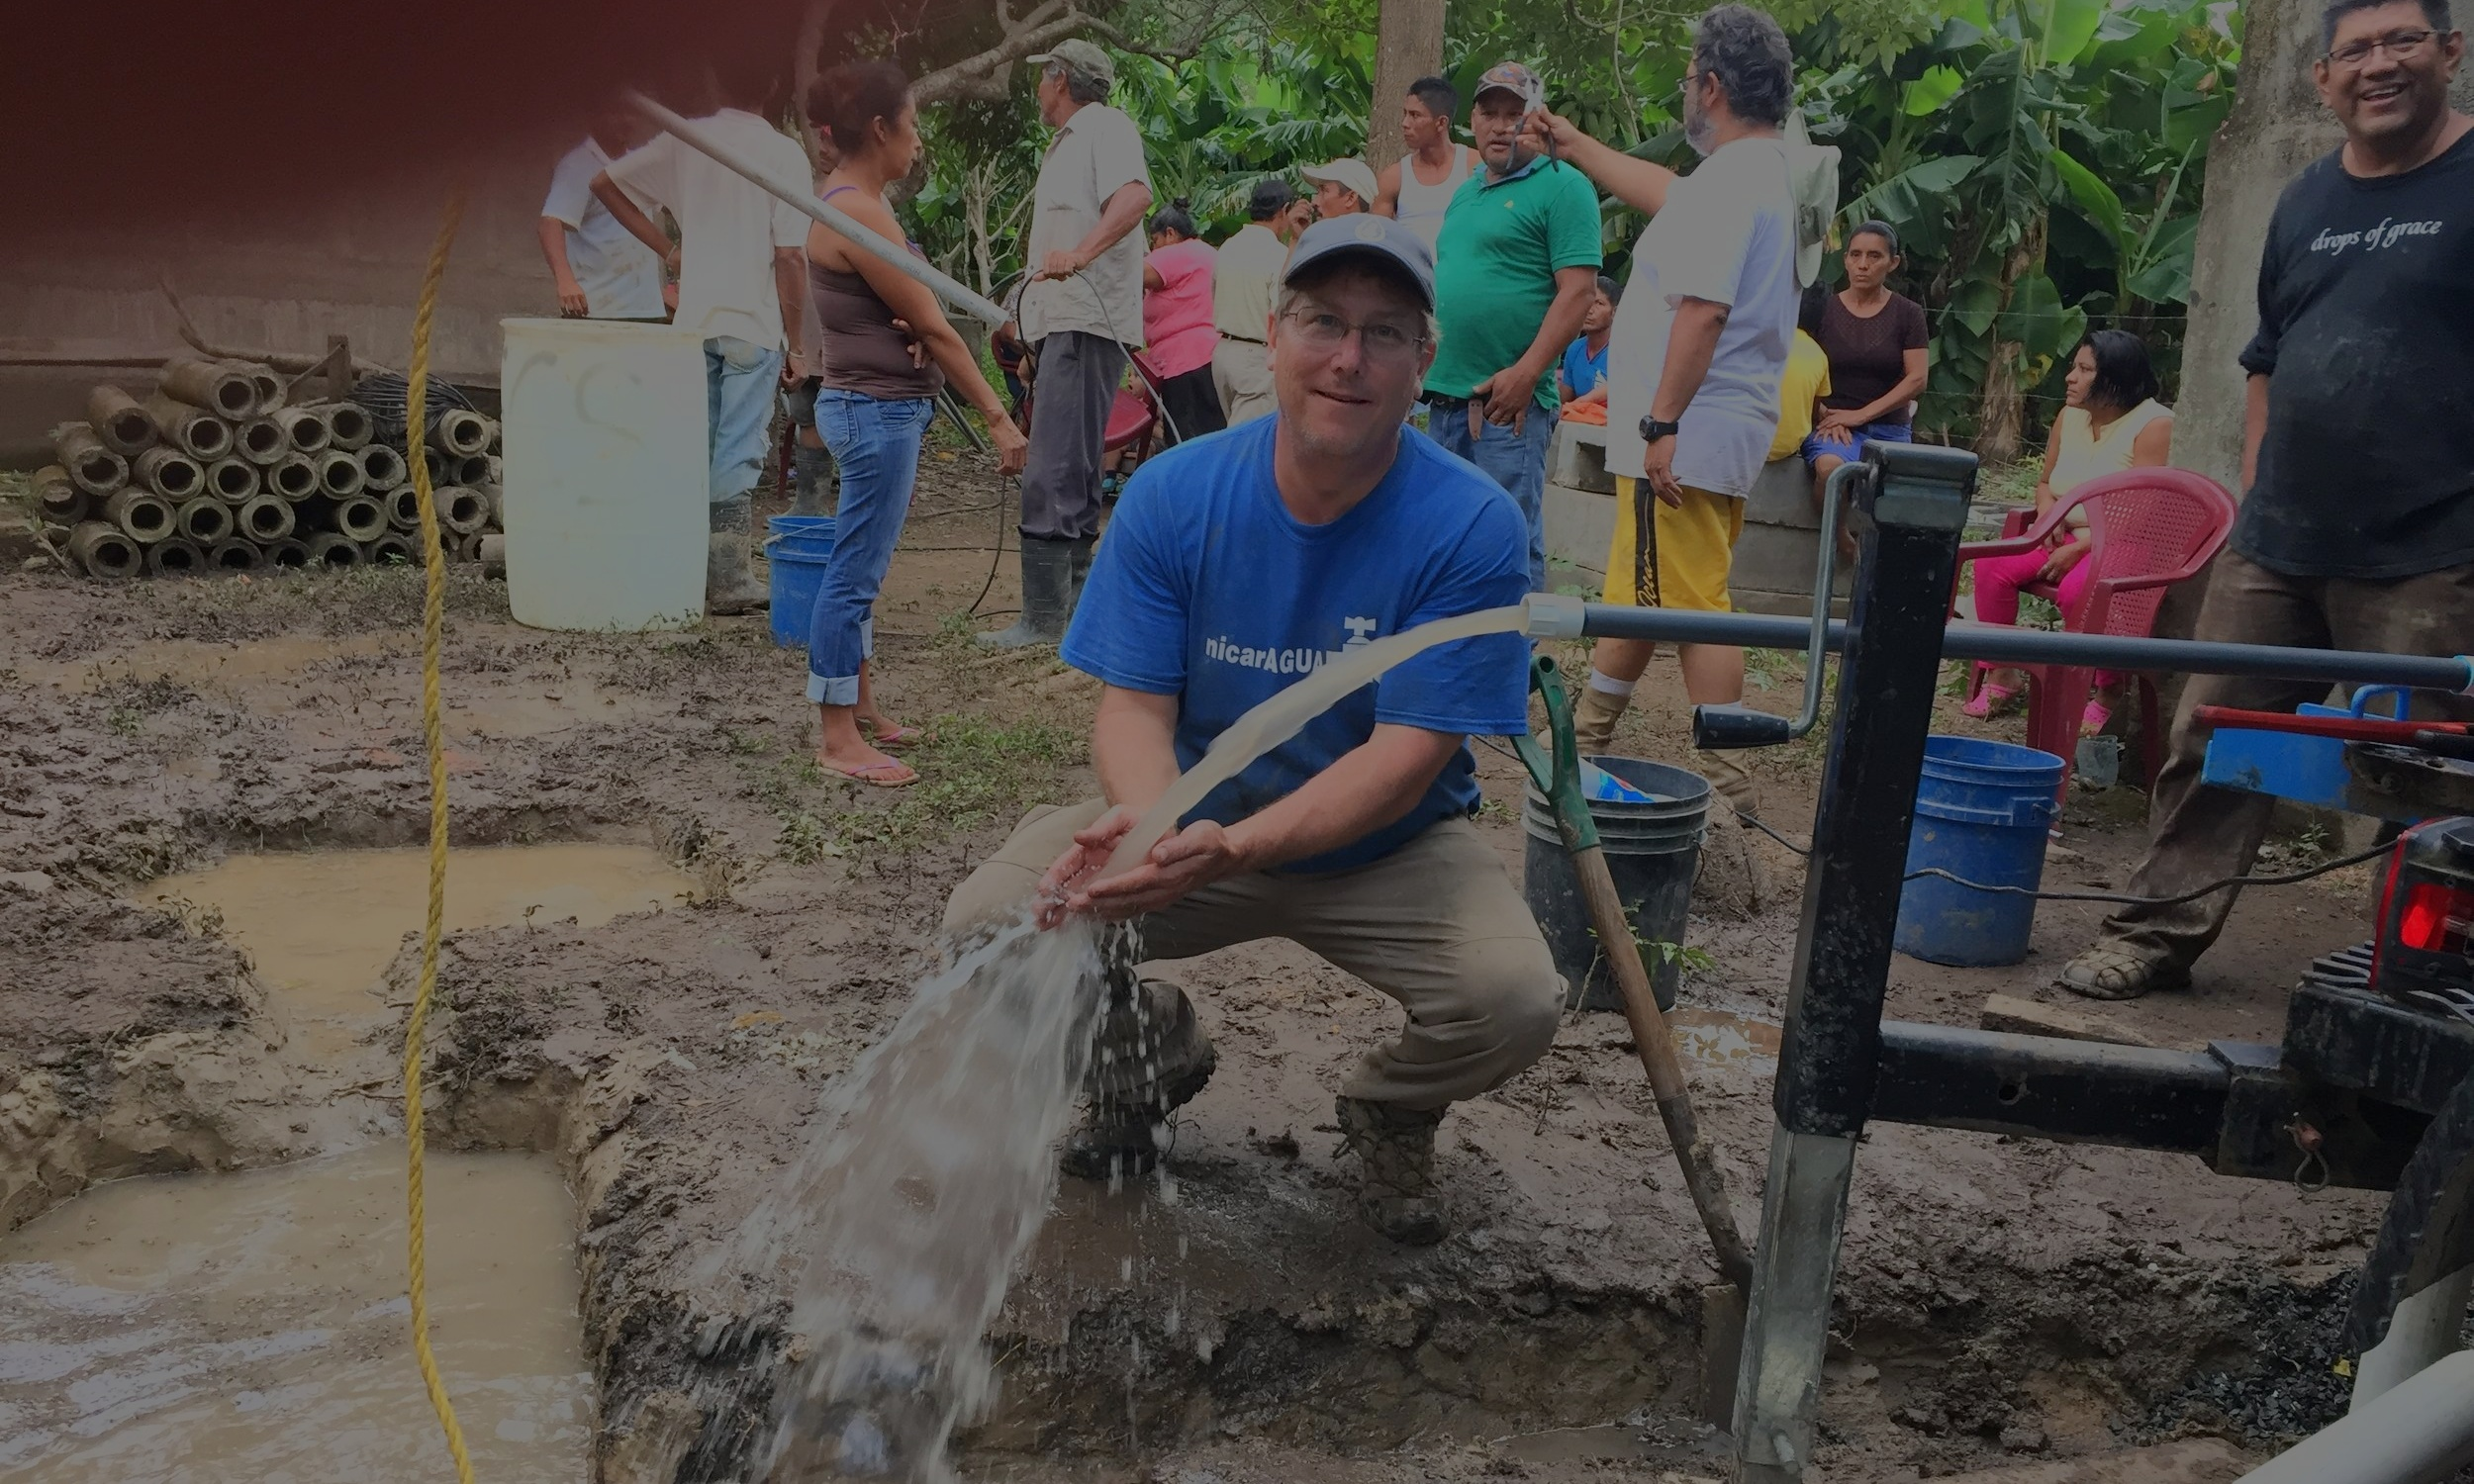 Sponsor a Well - You can help provide a water well that benefits hundreds of families and gives them access to a safe water source in Central America.